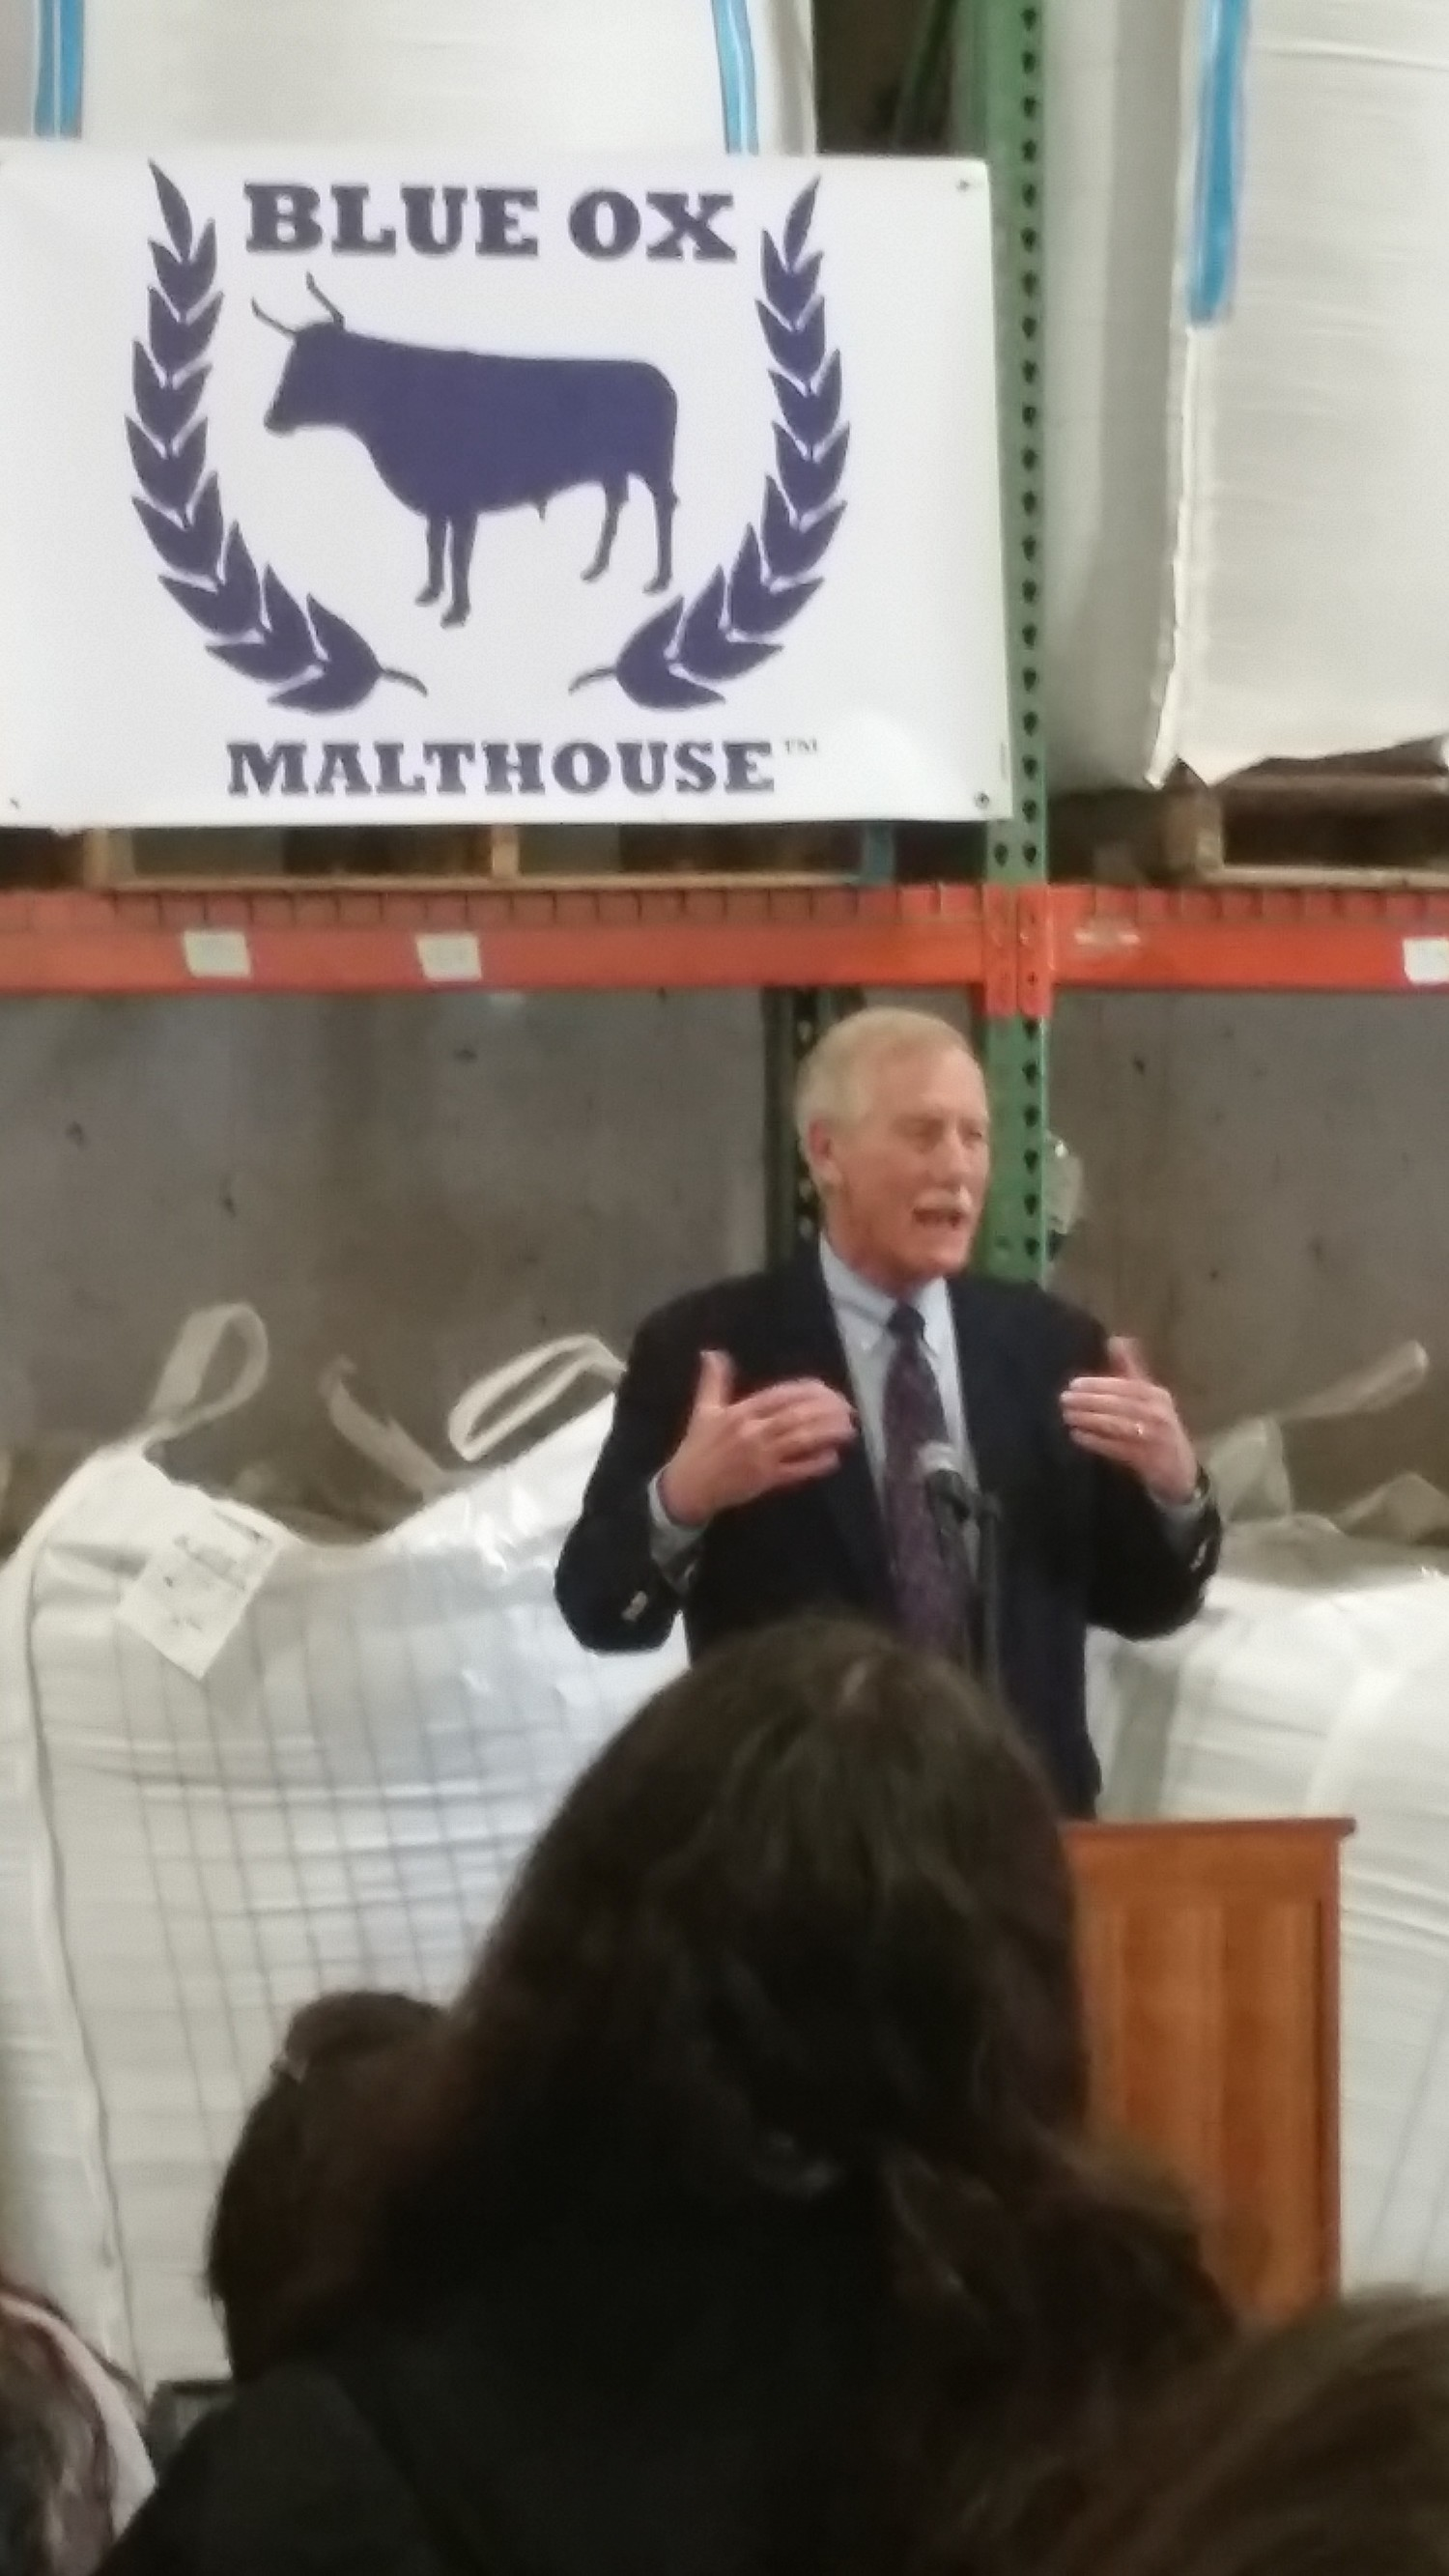 Senator Angus King told the crowd how important it is for Maine to have value-added processing of local grown products to stay in the state as Maine industries. Blue Ox Malthouse is a perfect example of addressing this need.